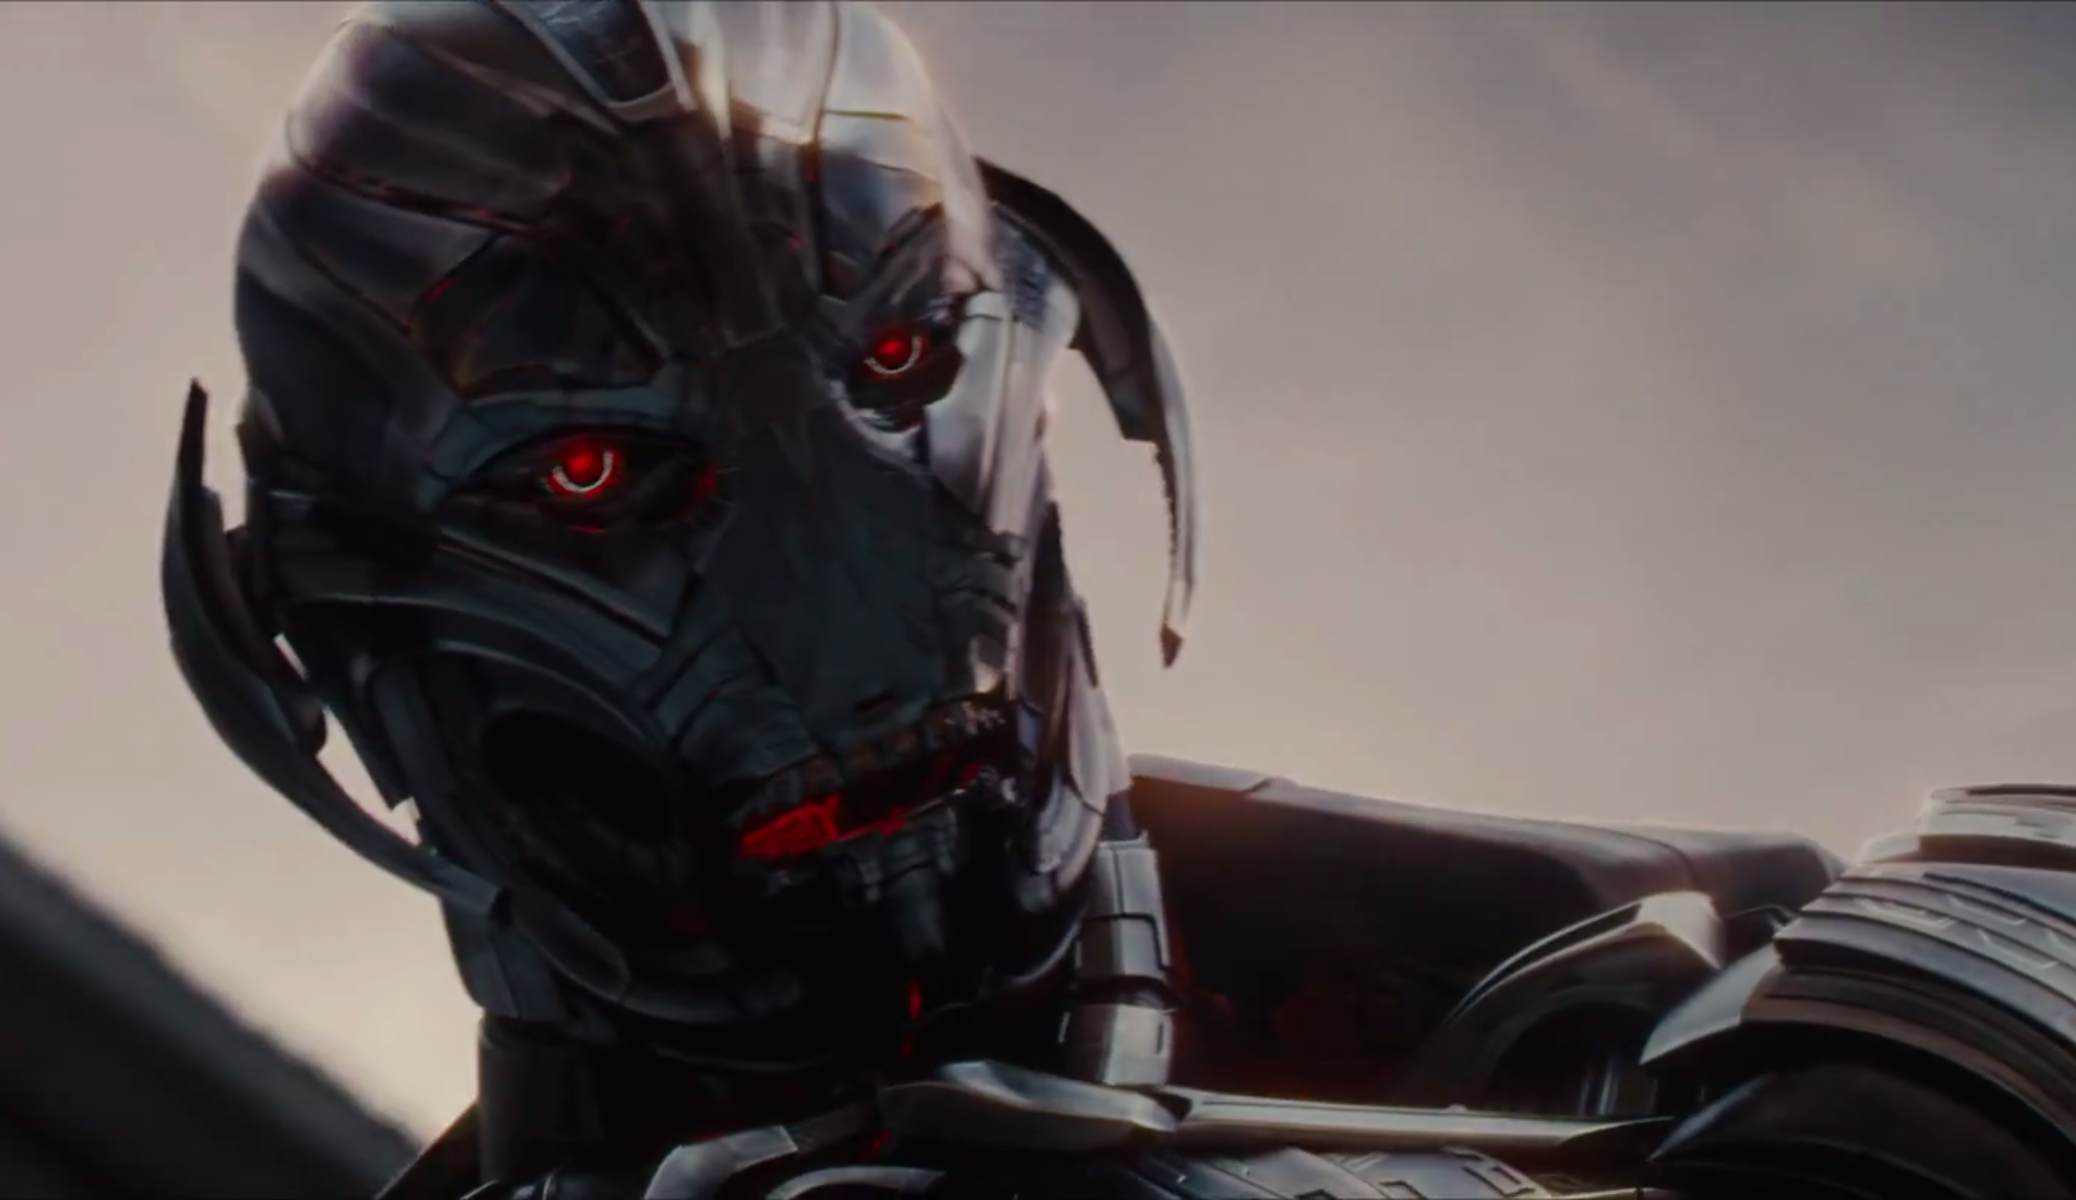 The avengers age of ultron release date in Melbourne